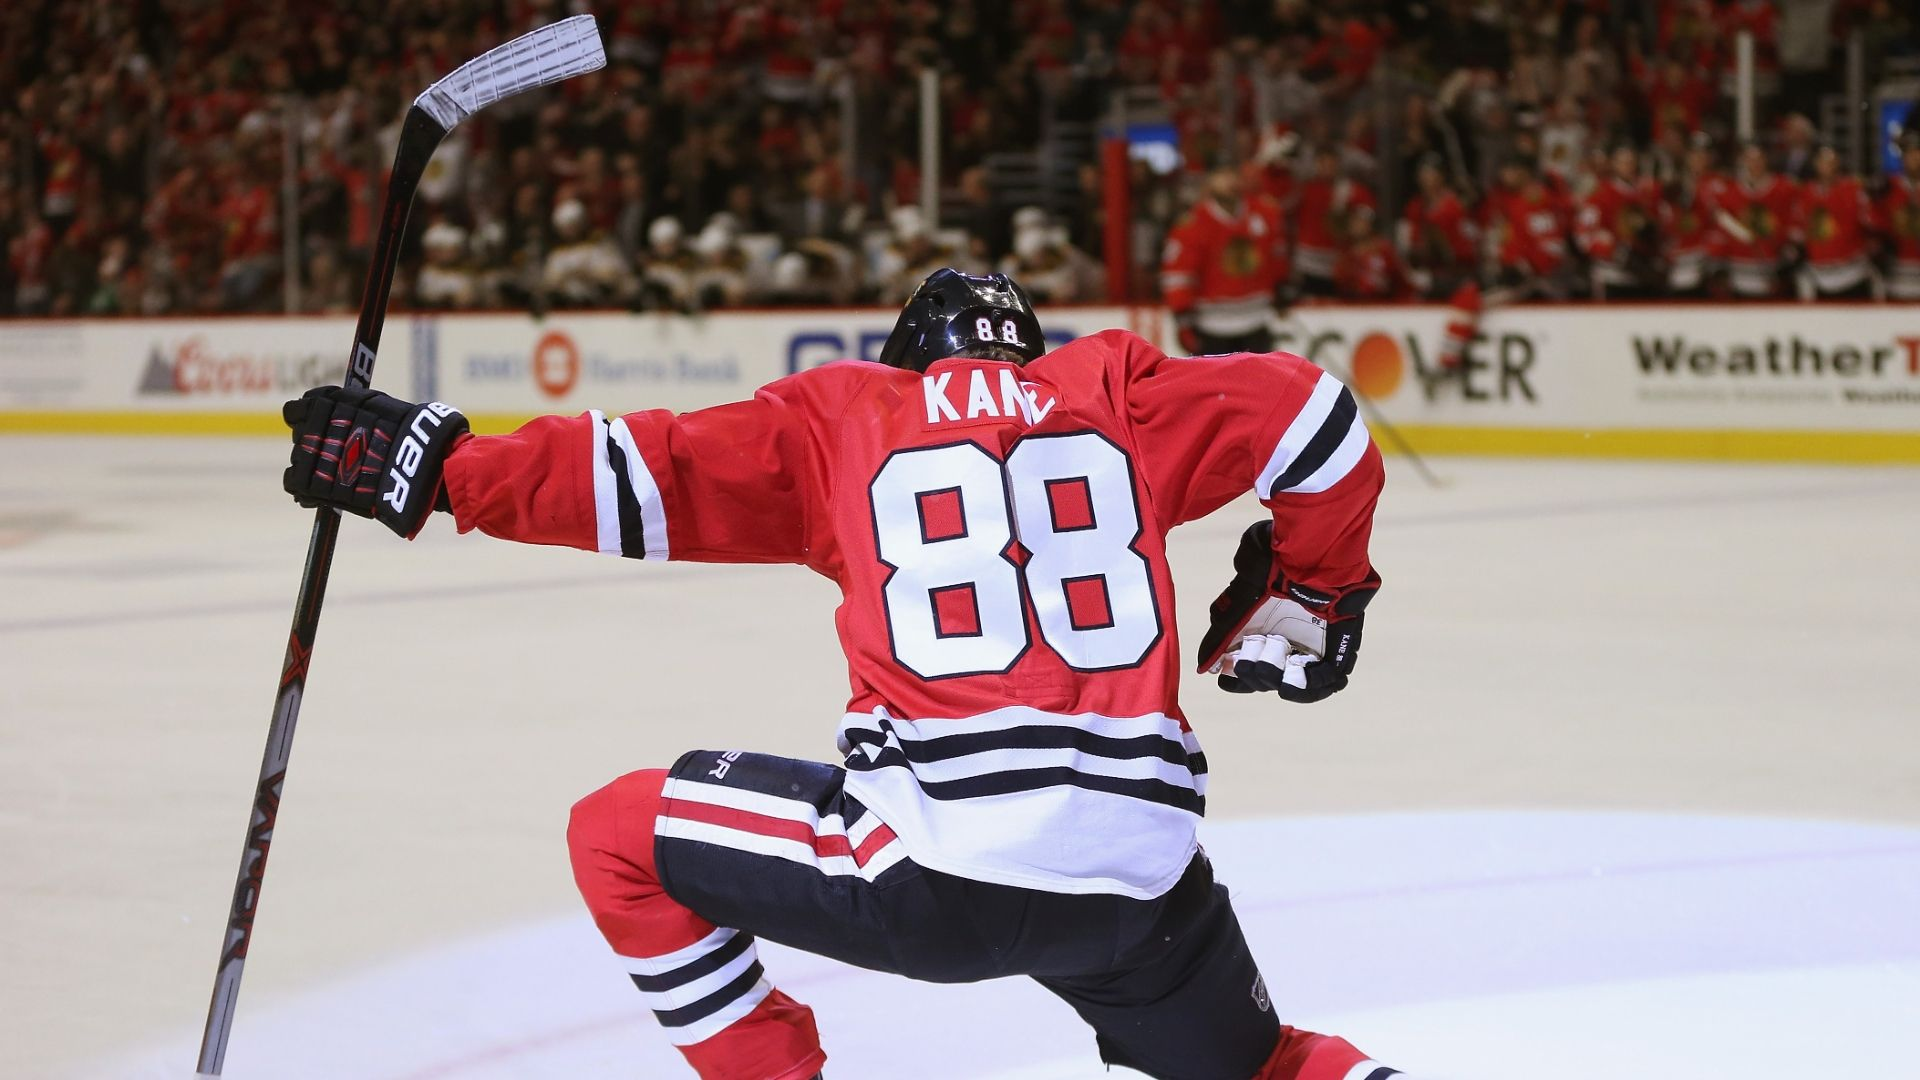 An American first: Kane top scorer